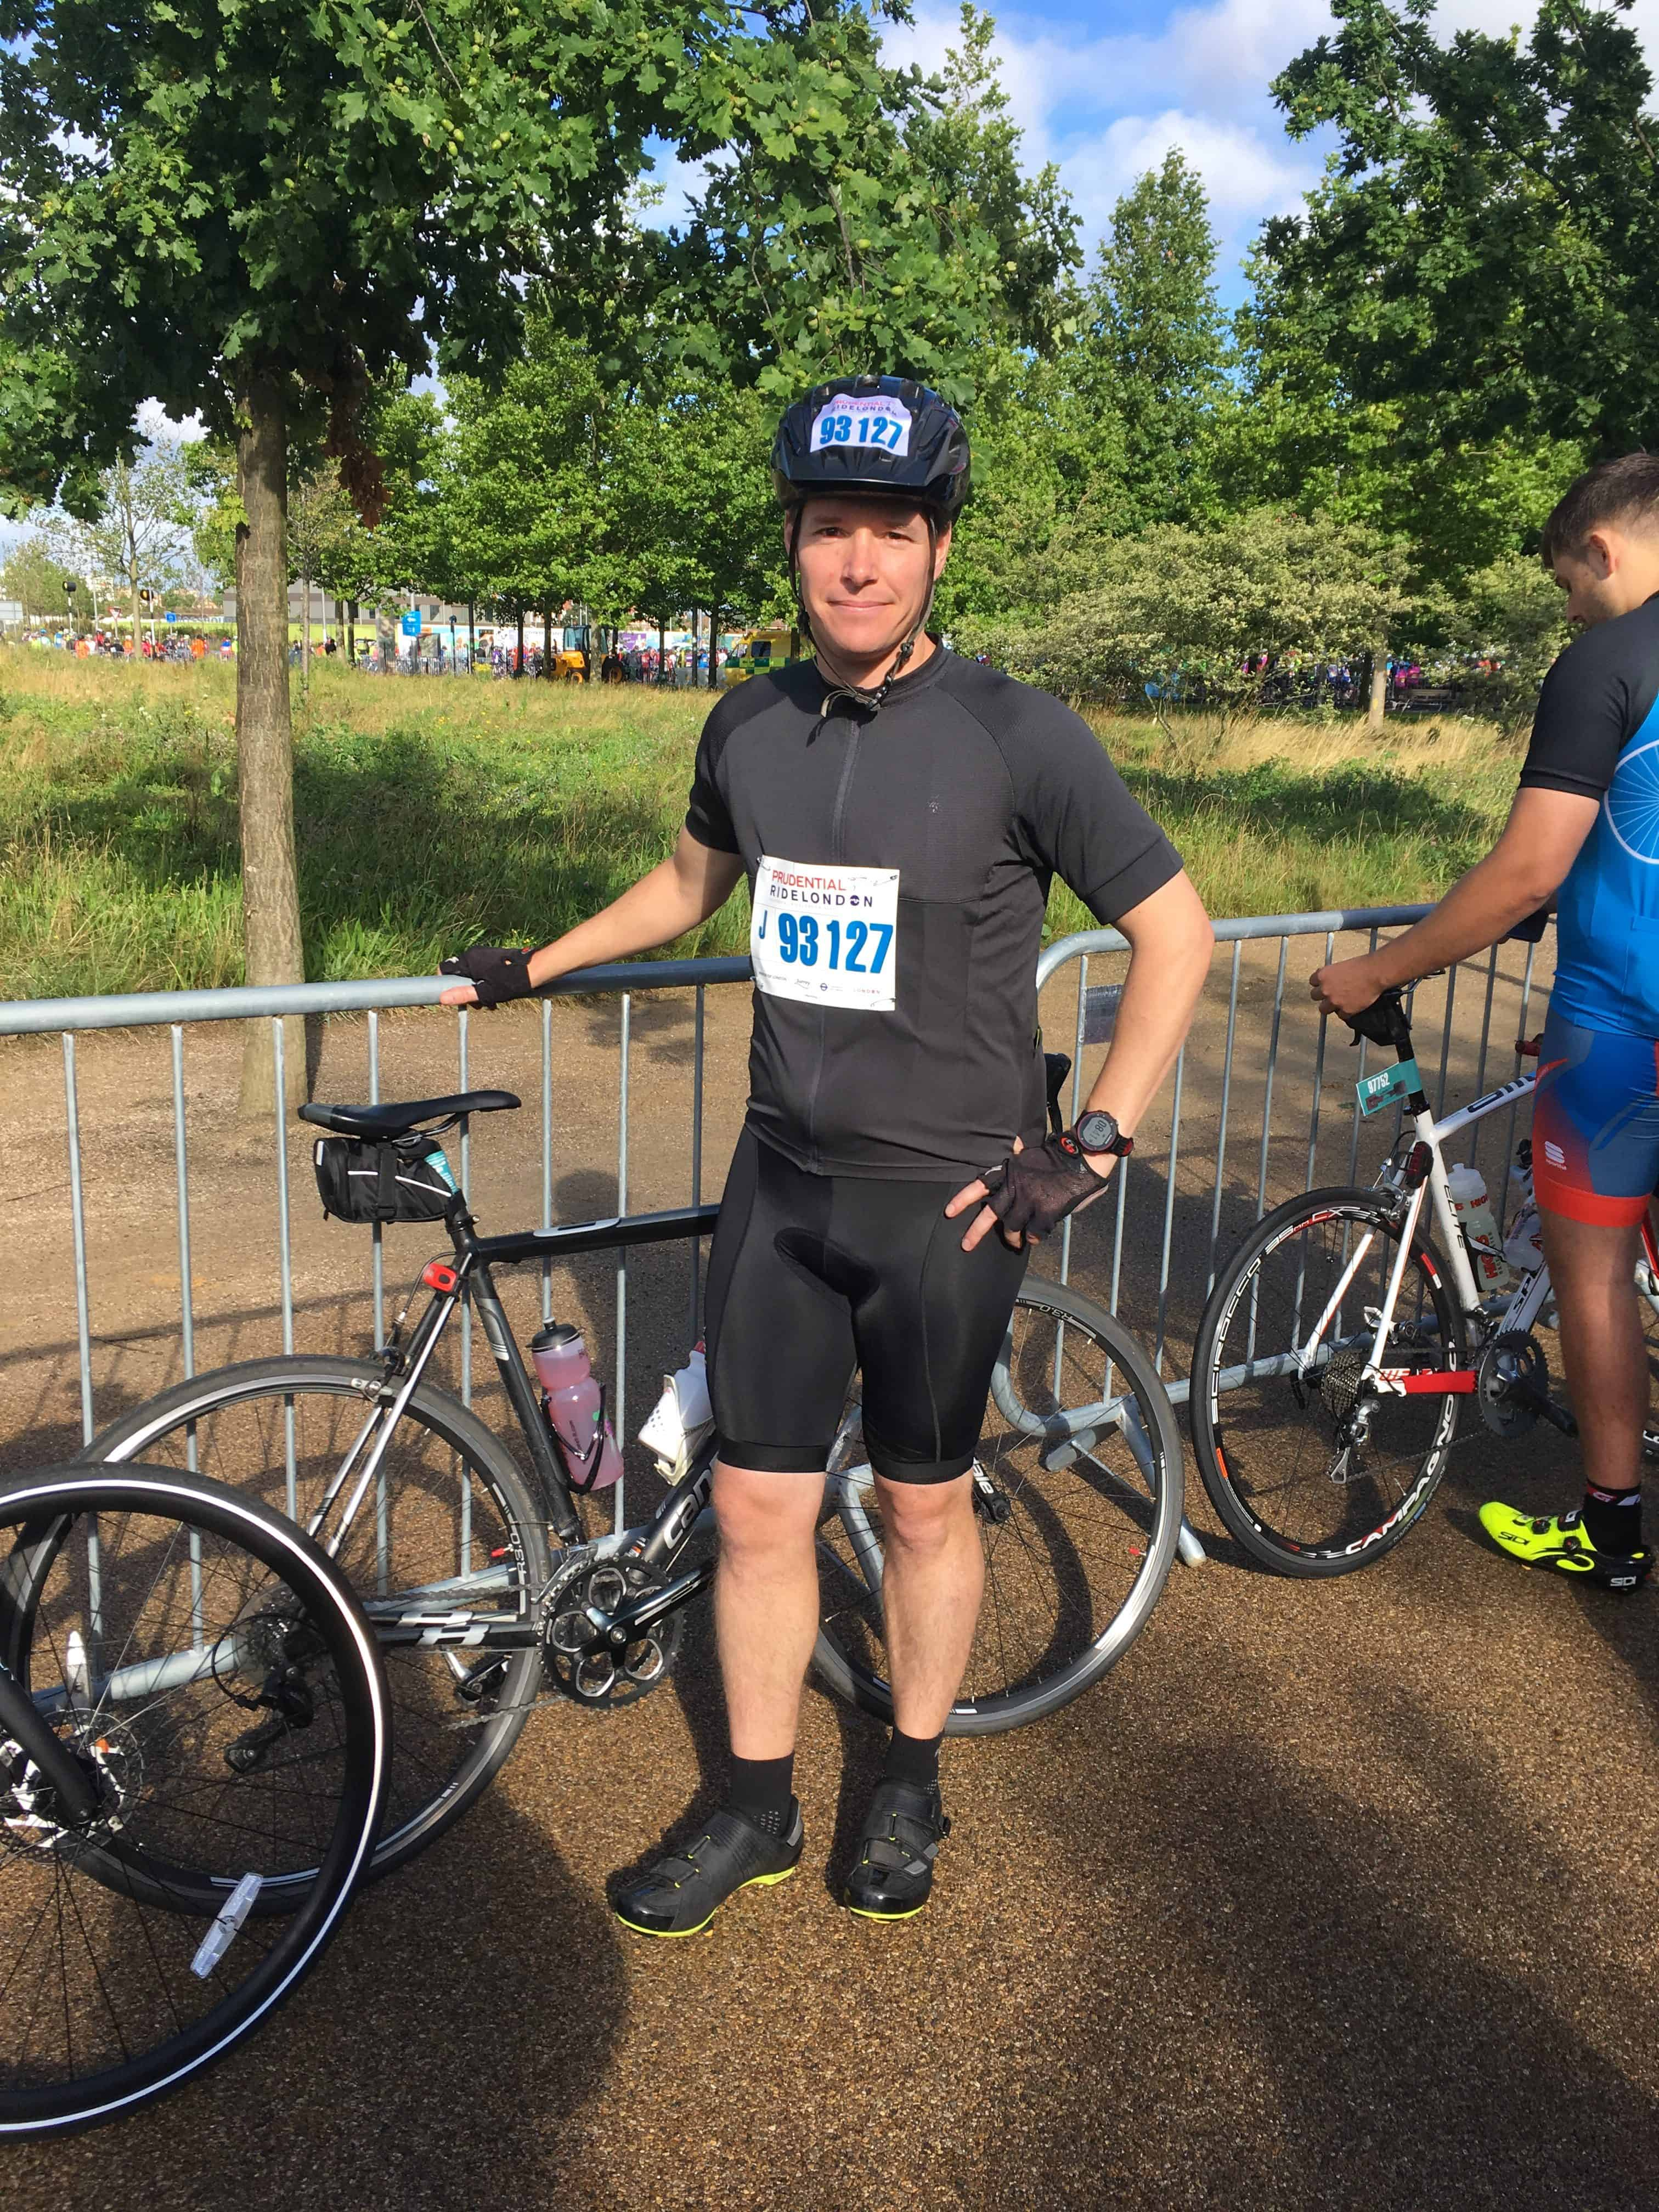 Ride London 46 Recap - 30th August 2017 - Better Sore Than Sorry